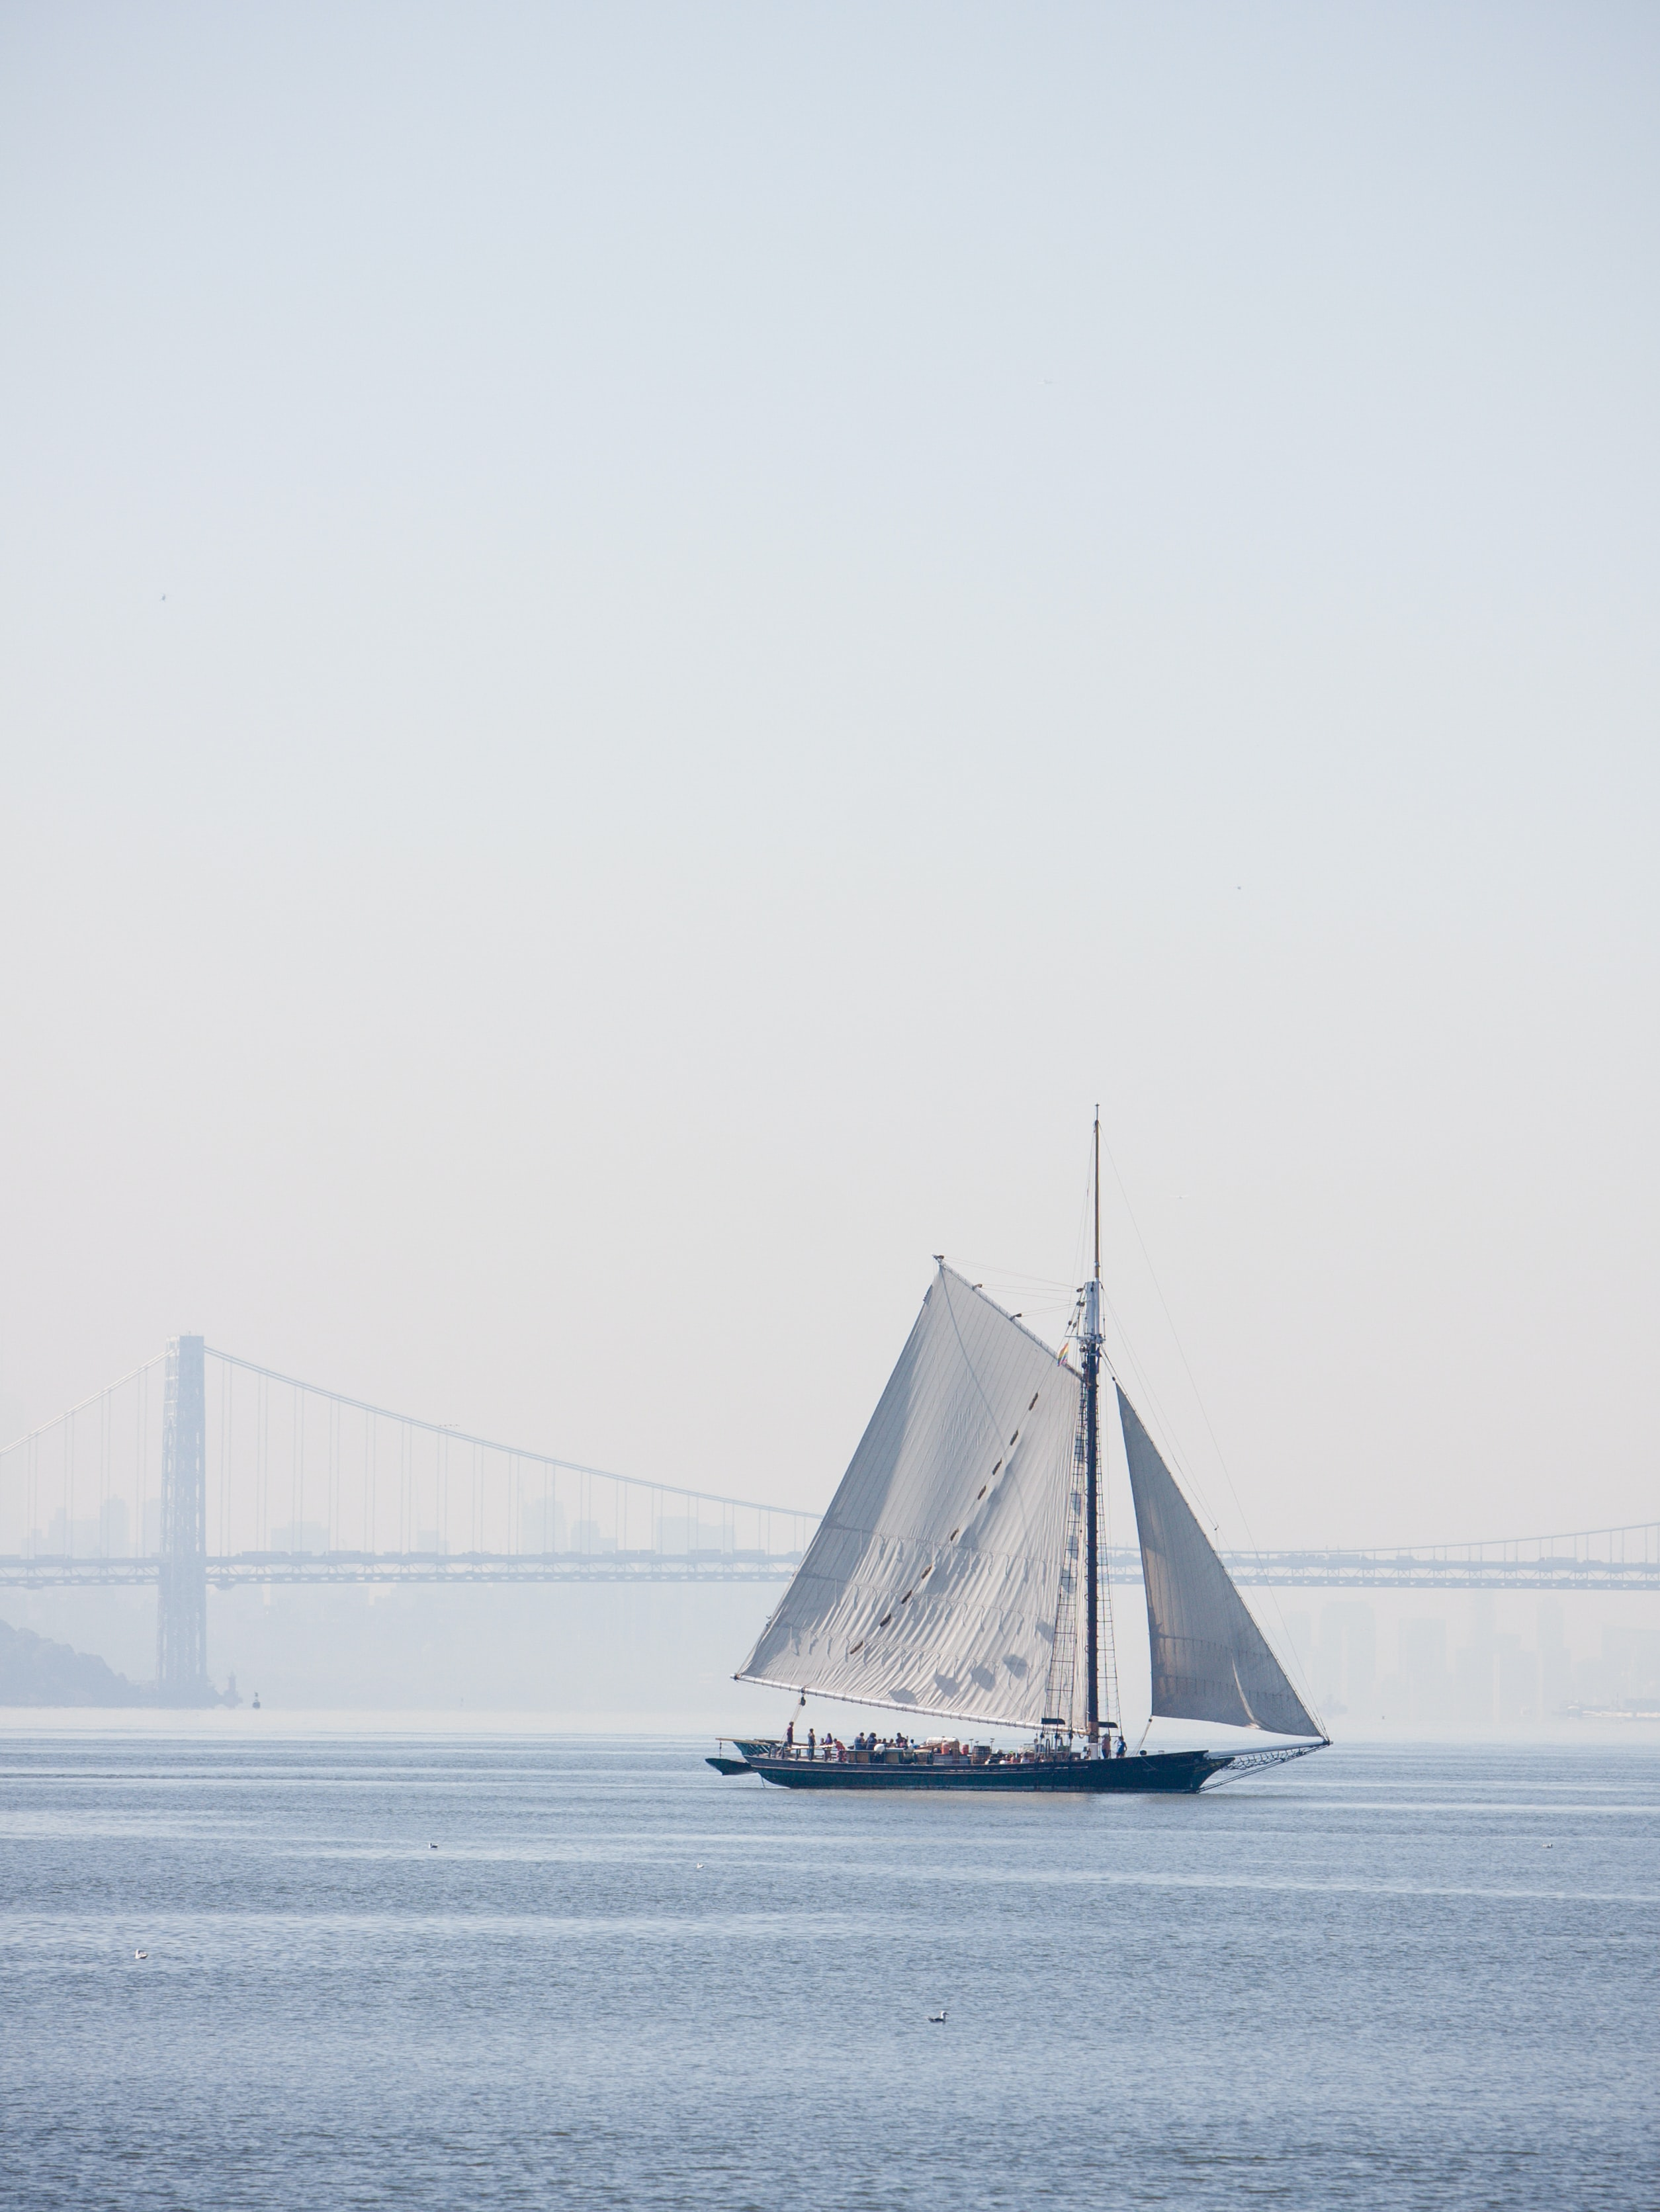 photo of white and black sailboat during daytime